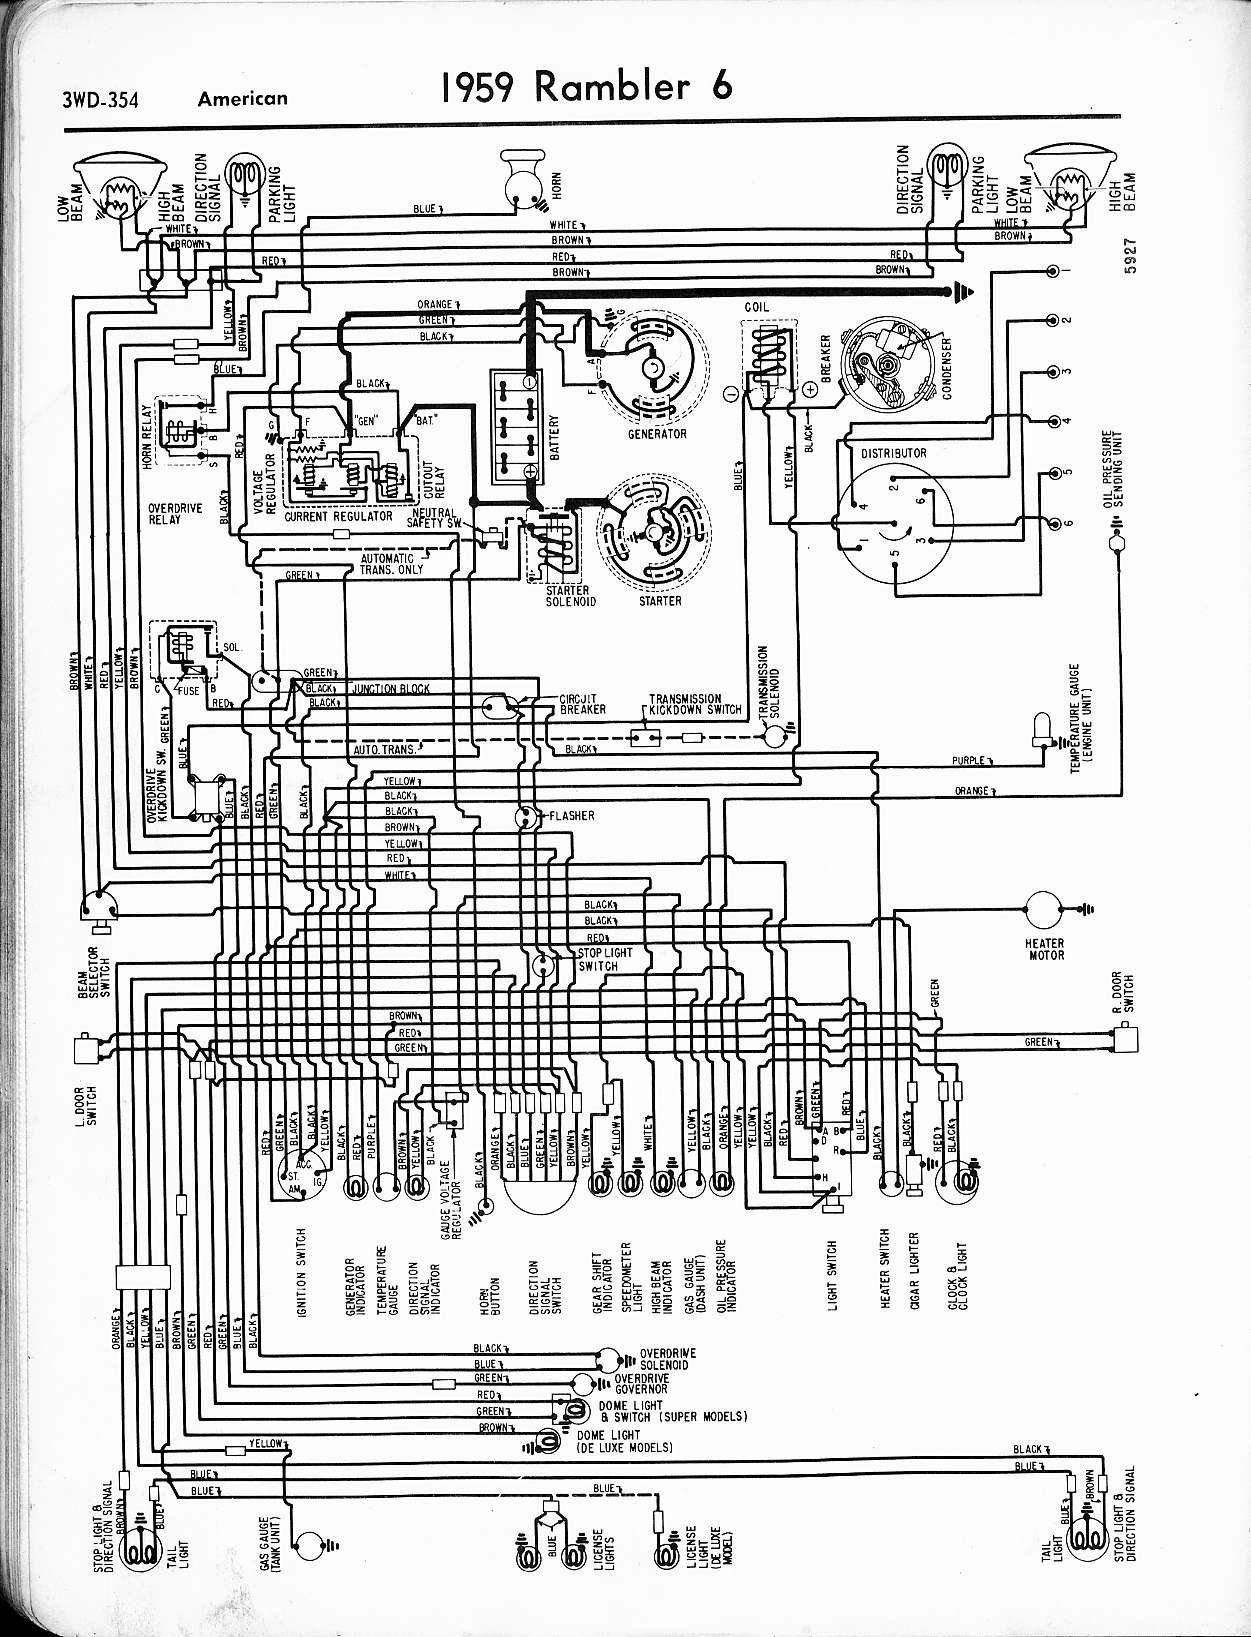 rambler wiring diagrams the old car manual project 1959 rambler 6 american